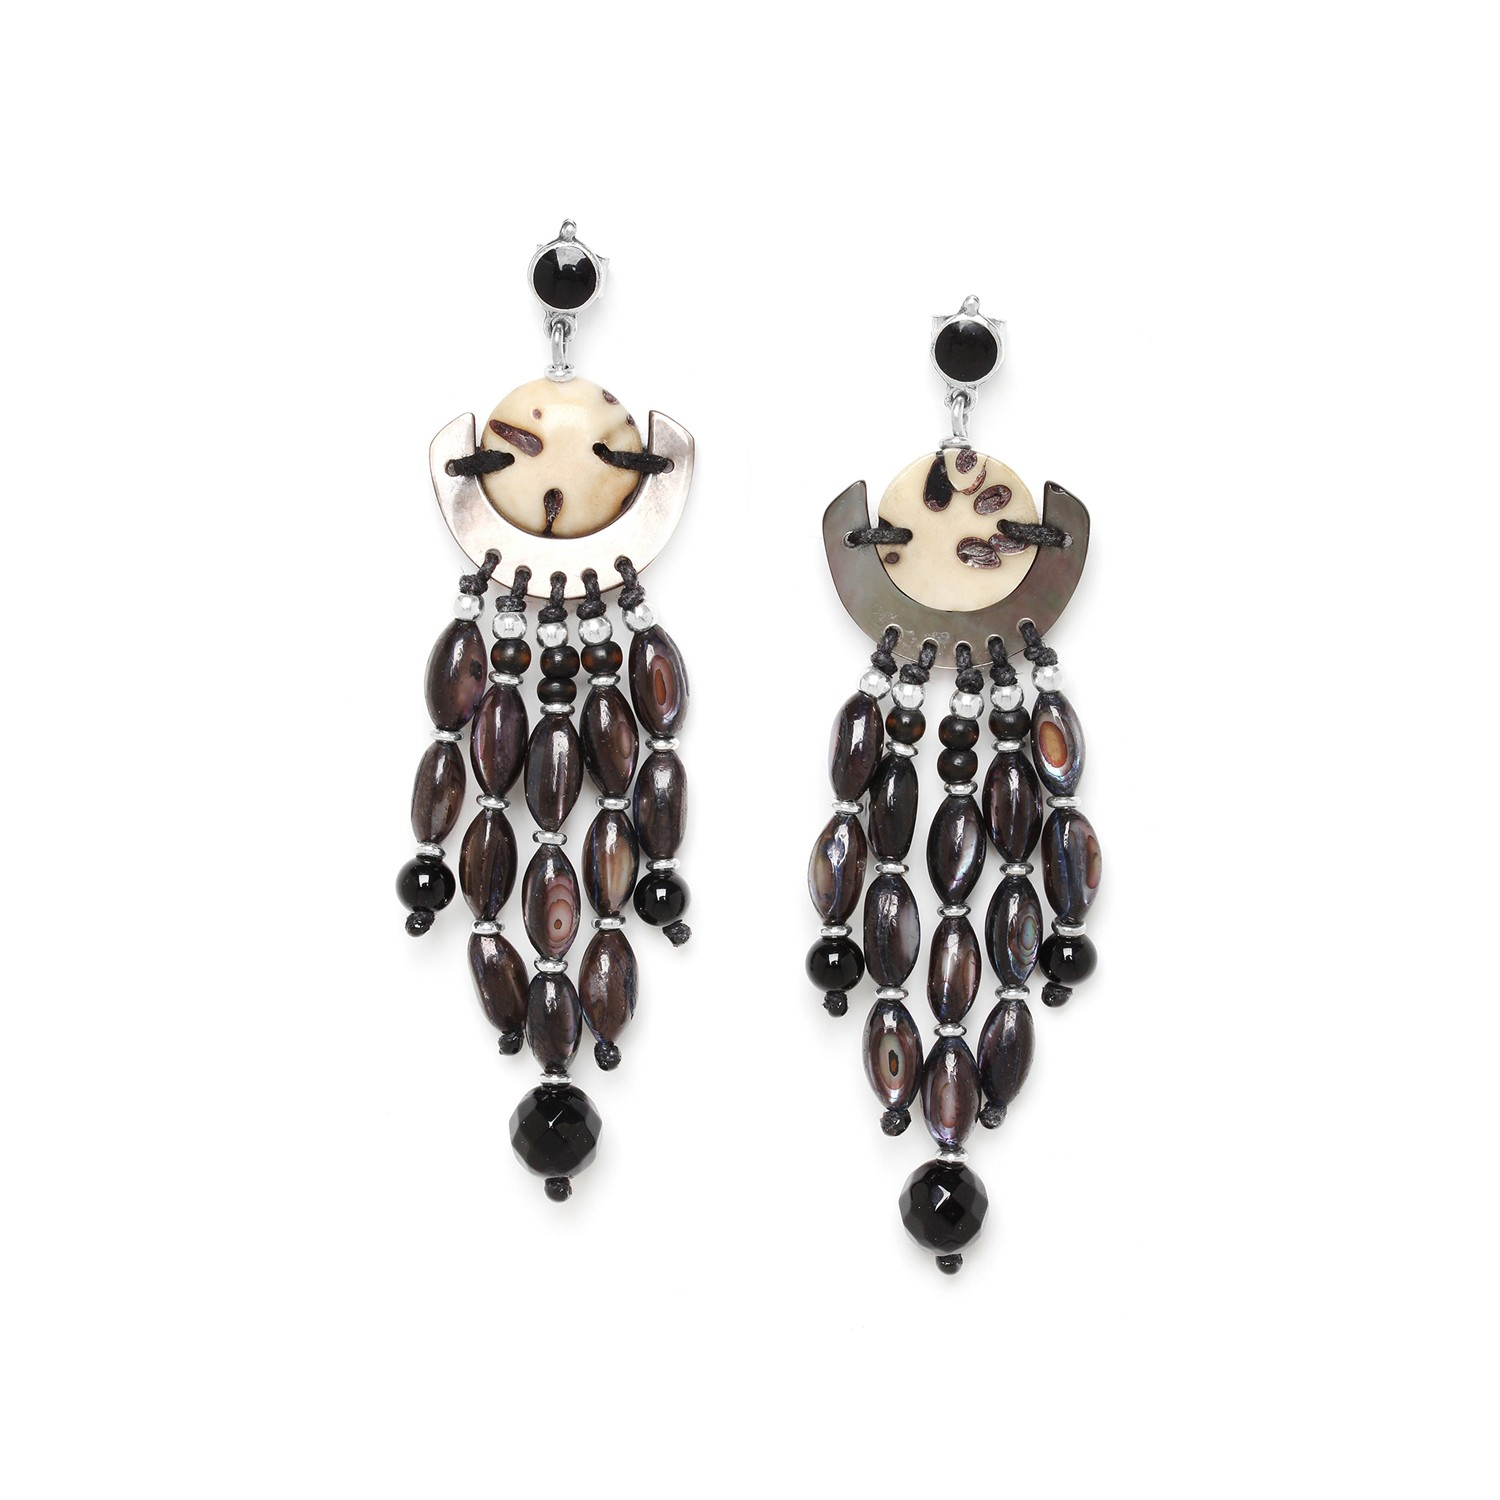 SERVAL waterfell earrings